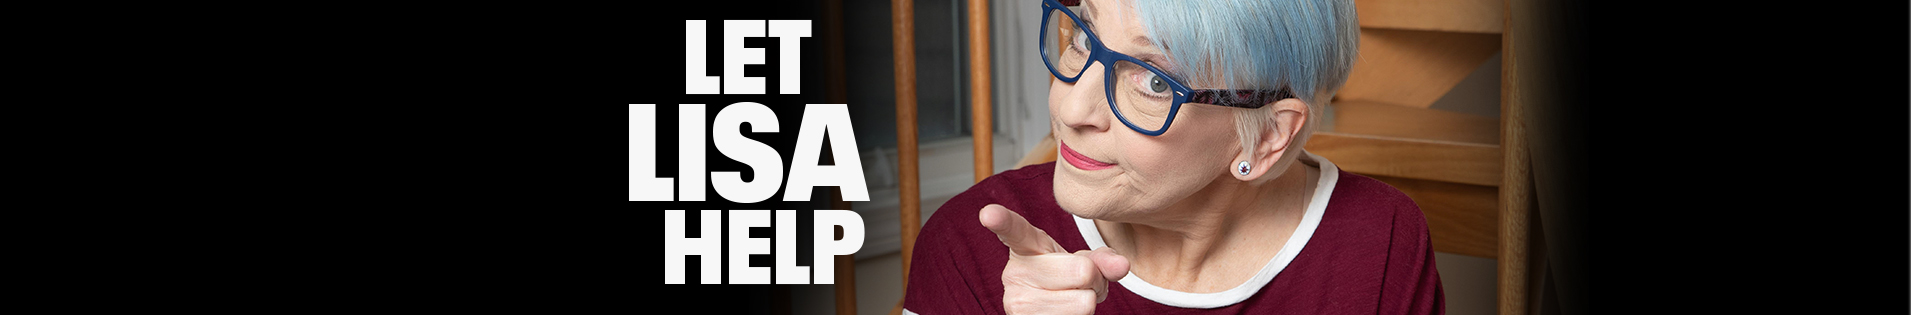 Let Lisa Help with Lisa Lampanelli